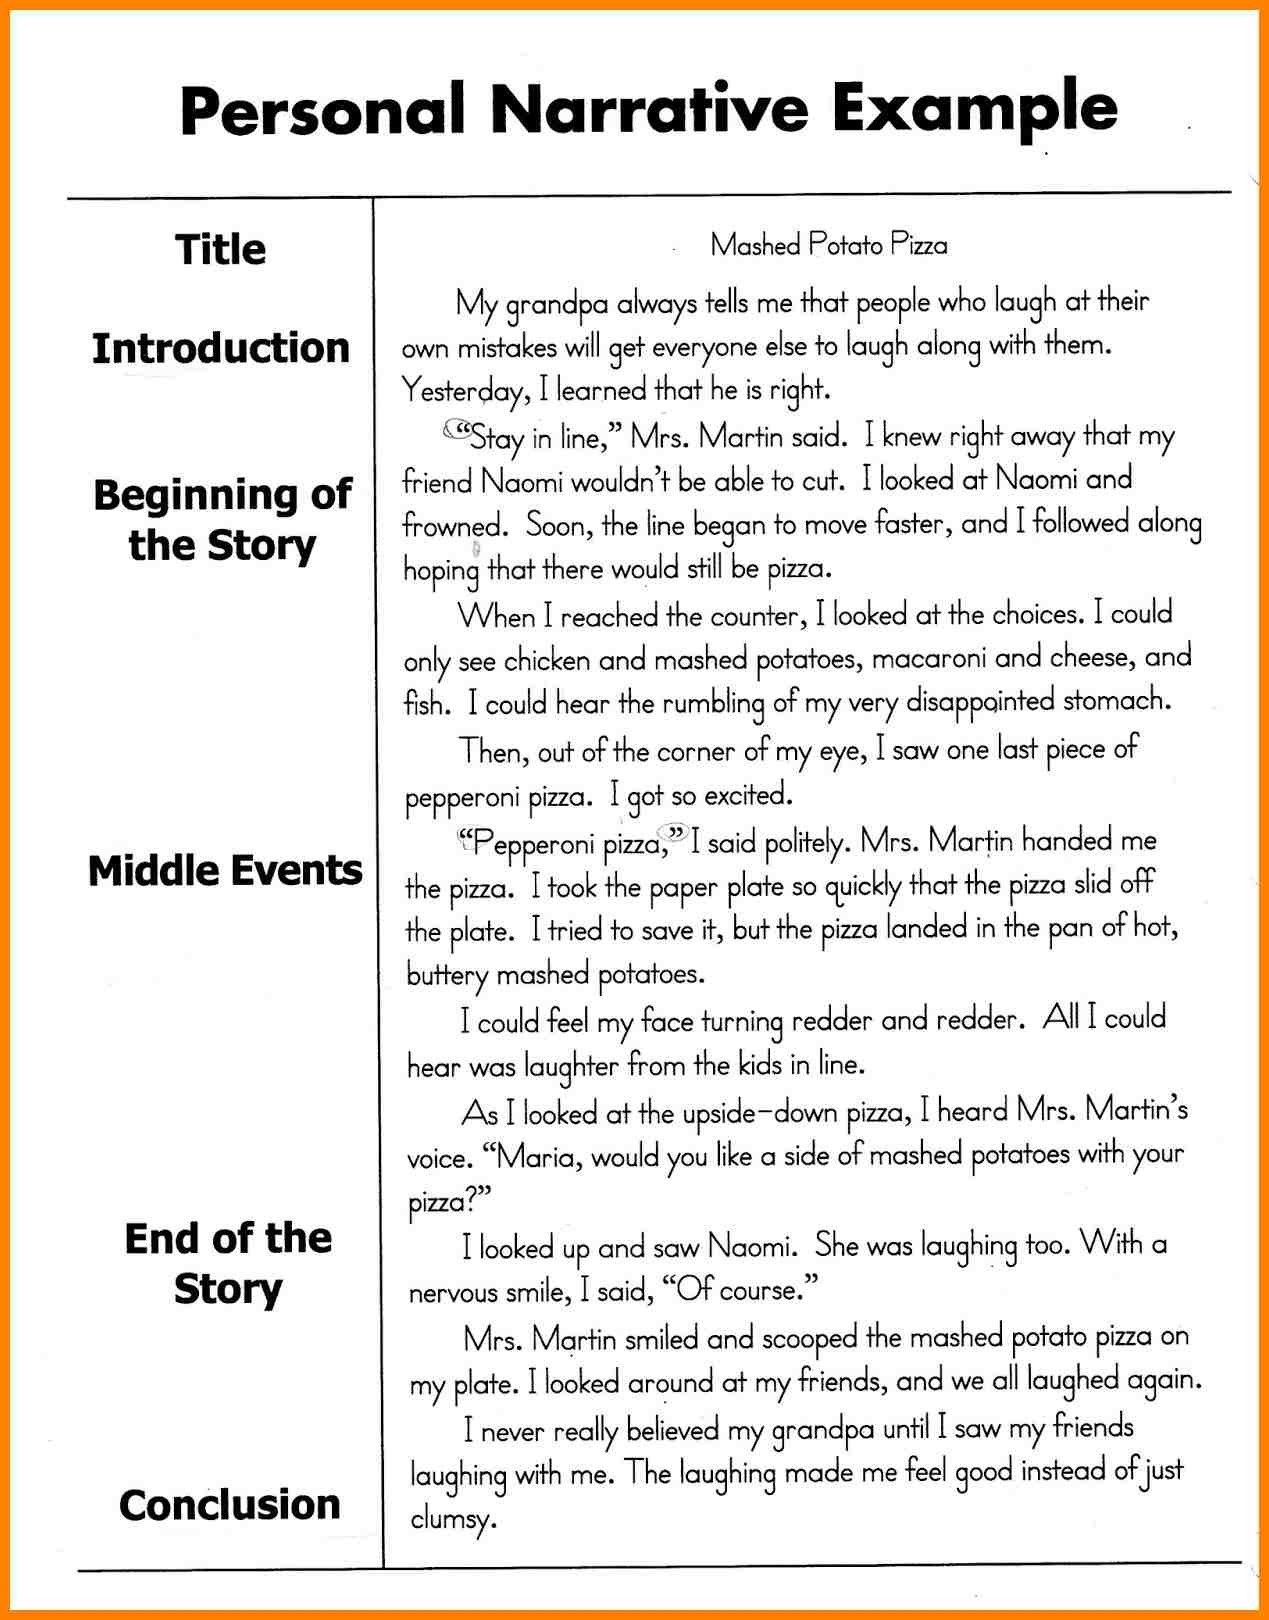 Personal Narrative Examples 8Th Grade | World of Example